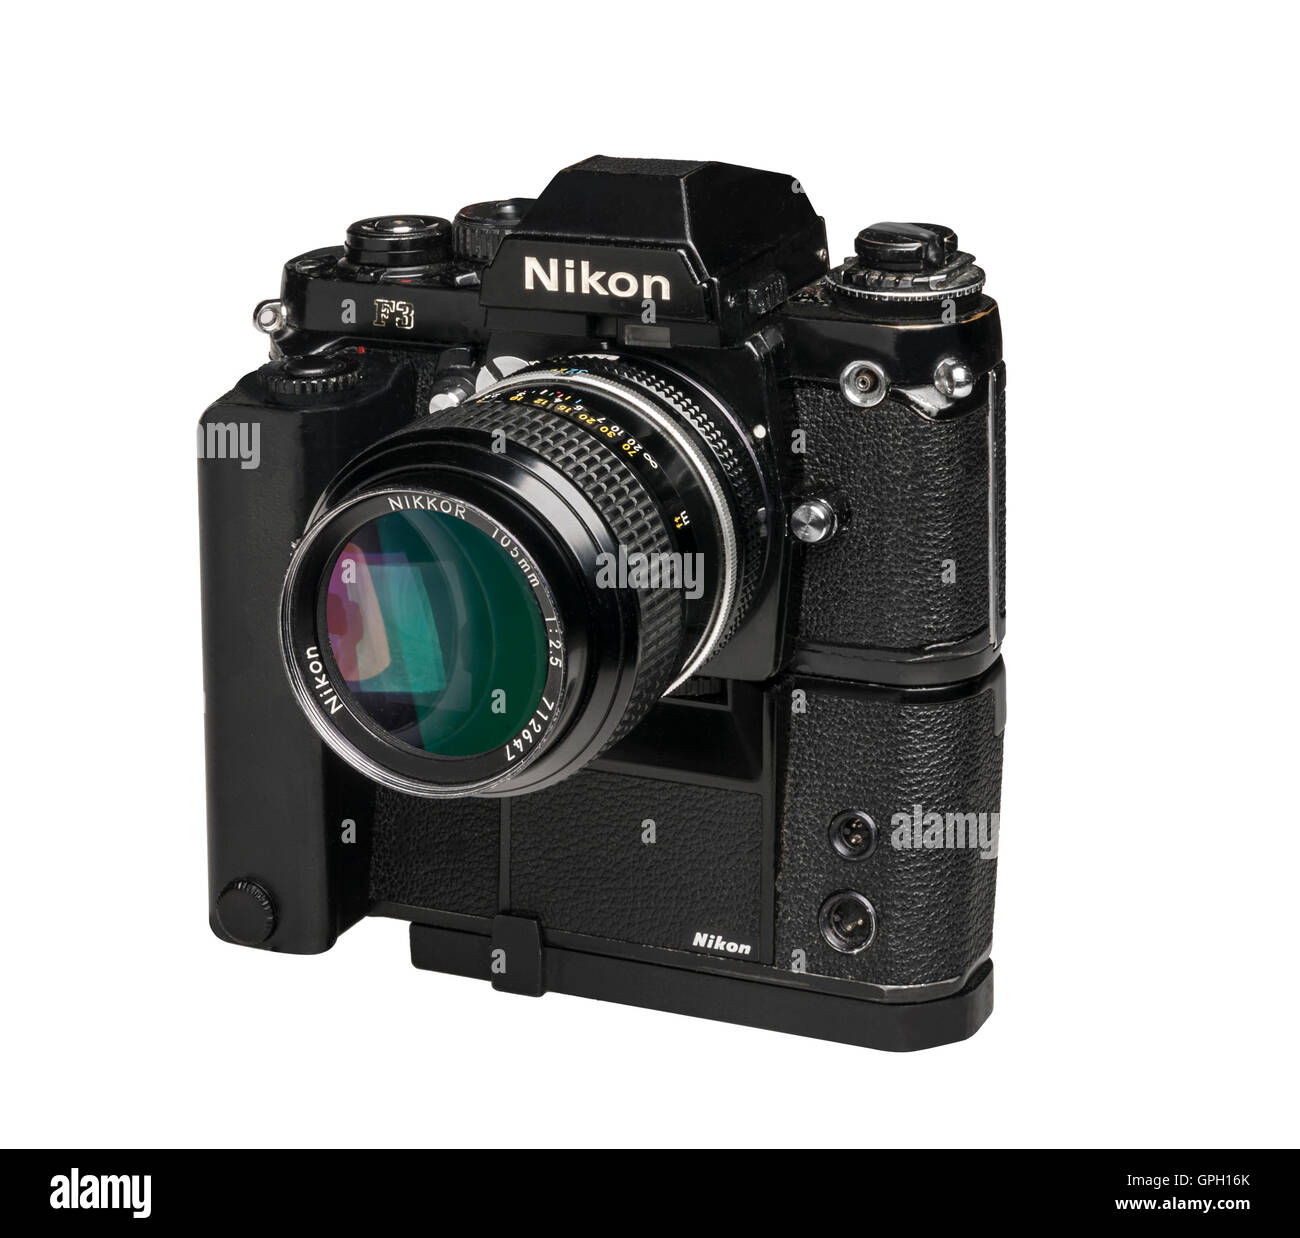 1990 Nikon F3 professional 35mm film camera withMD4 Motordrive and 105 mm lens - Stock Image